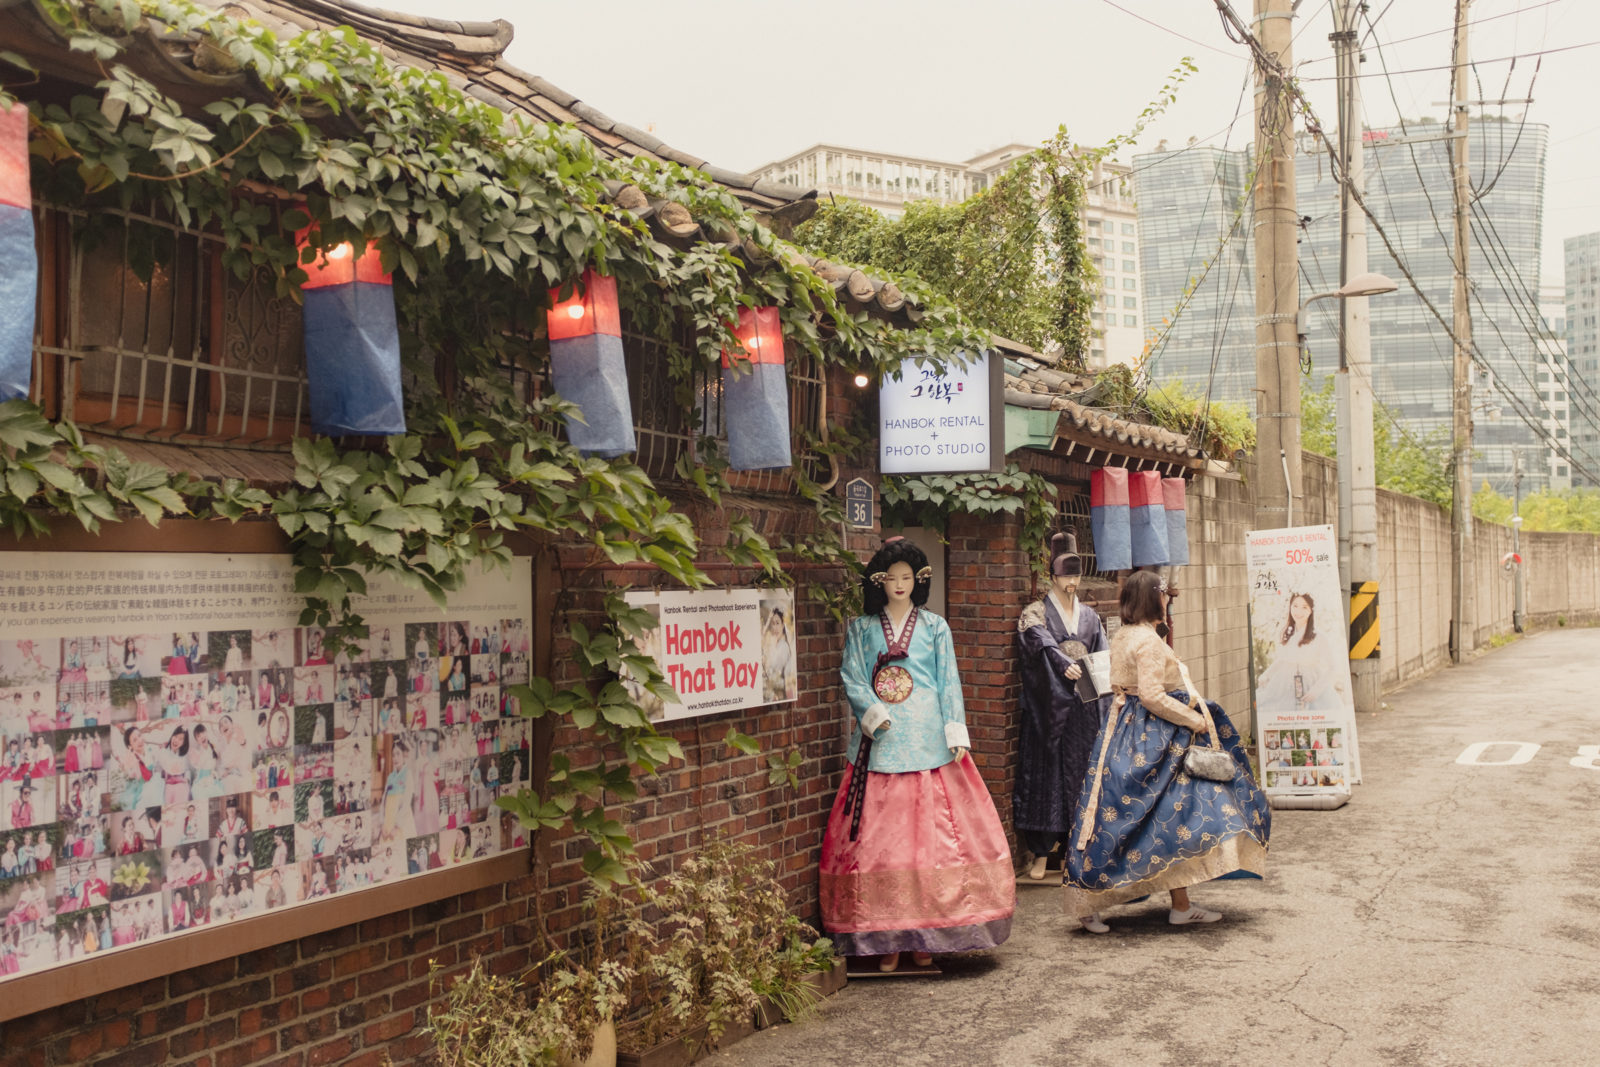 Hanbok That Day Rental and Photo Studio